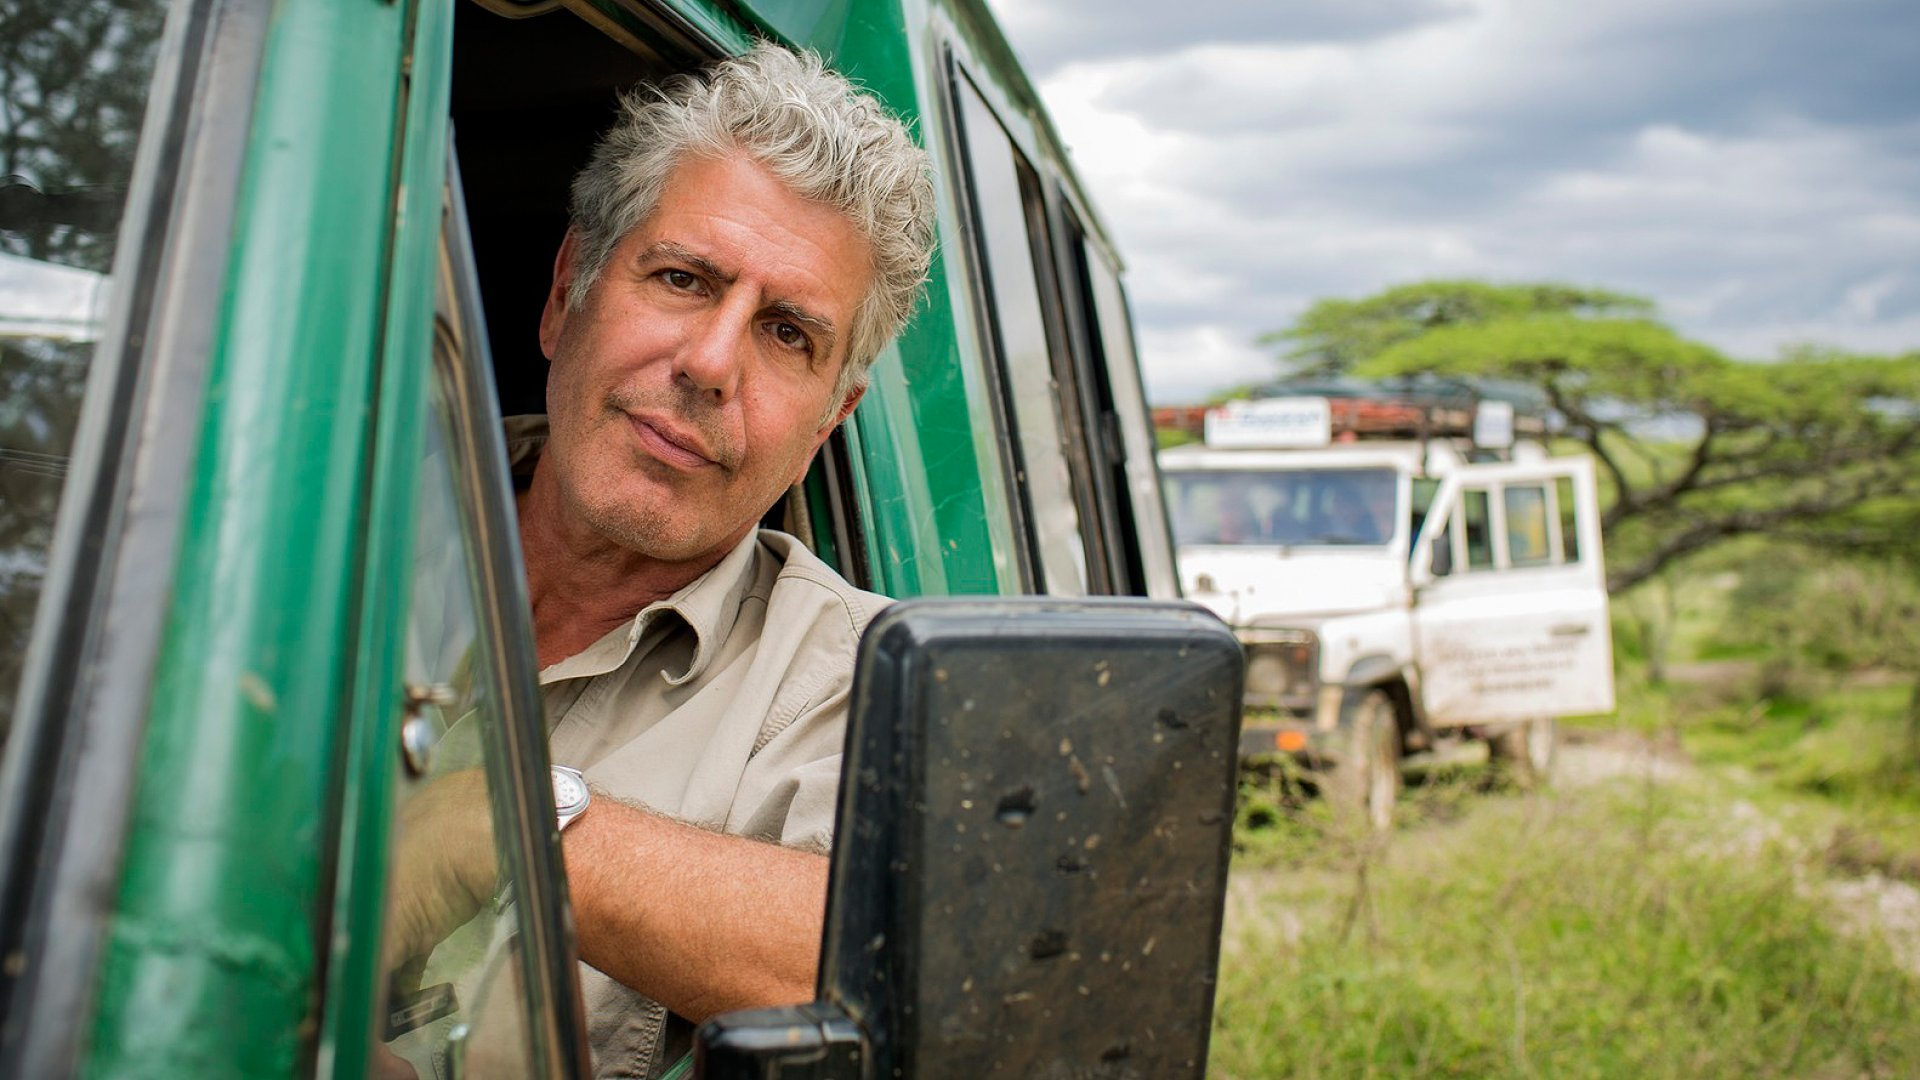 Partners Unknown: Anthony Bourdain Joins Forces With Travel Startup